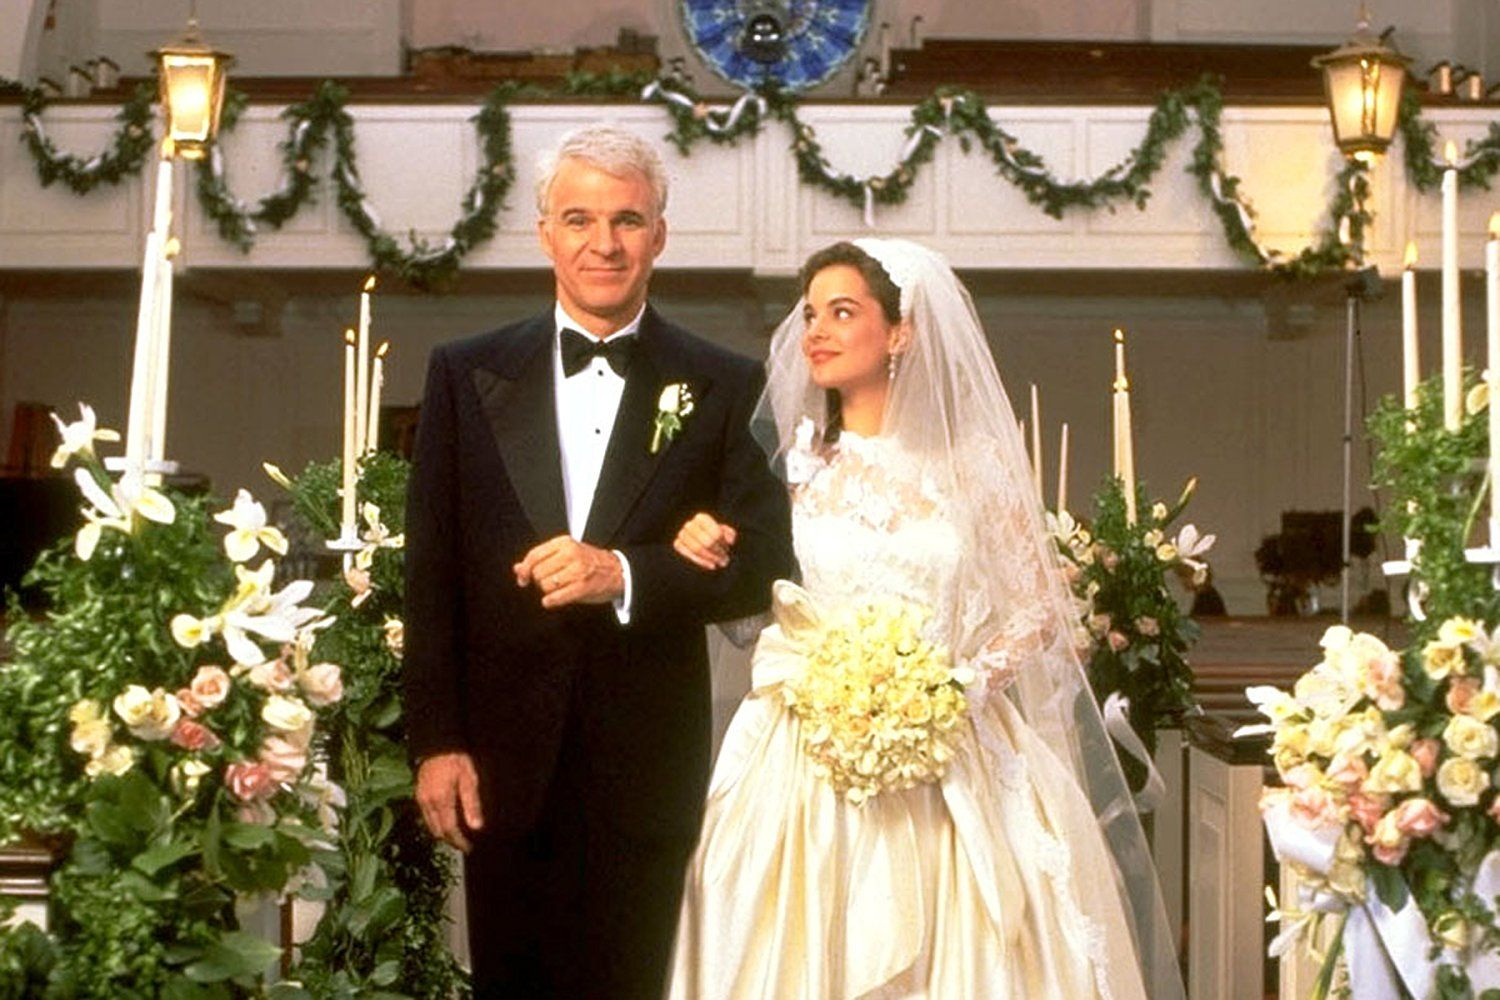 Things You Might Not Know About Father Of The Bride - Fame10